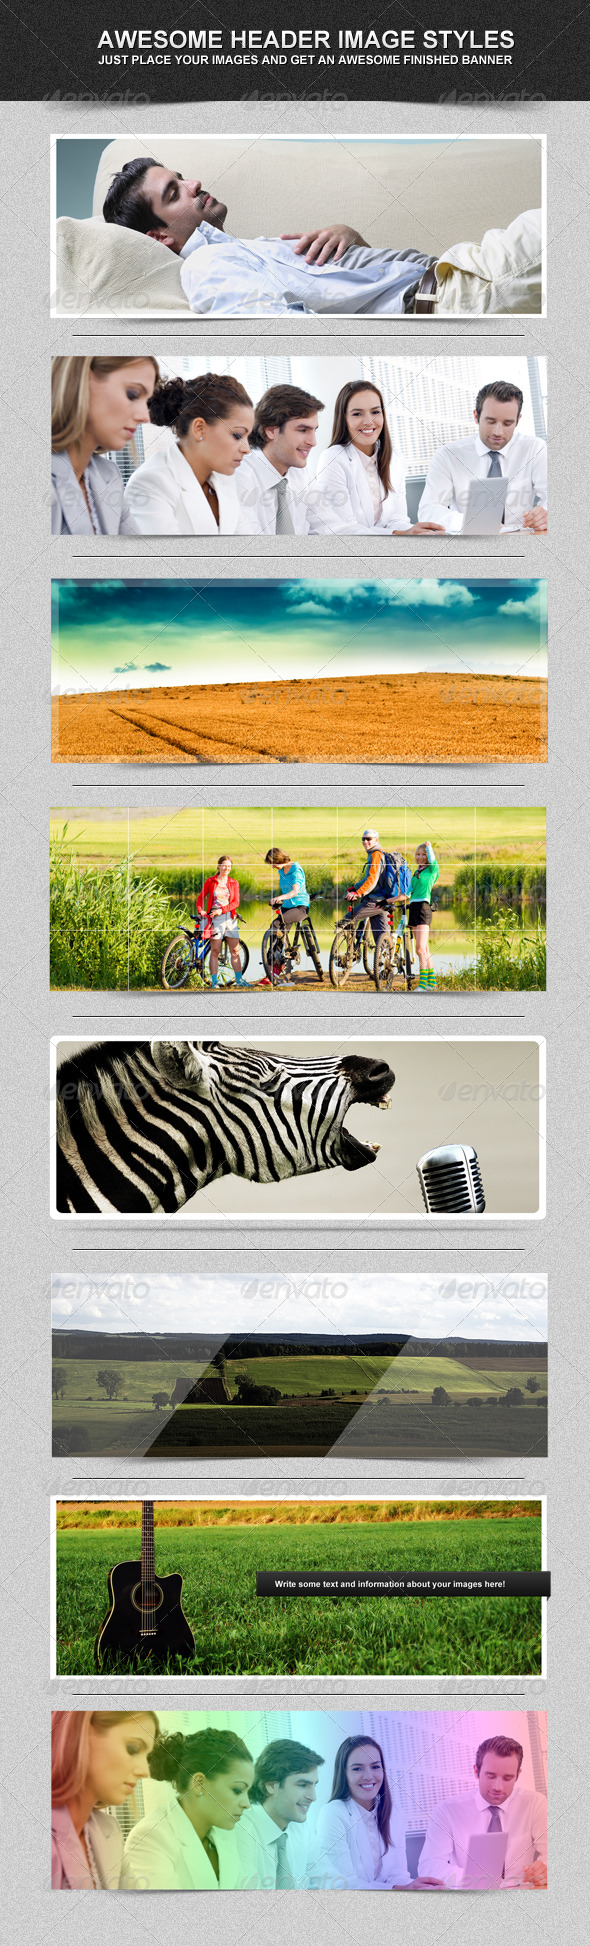 GraphicRiver Banner Header Image Styles 163342